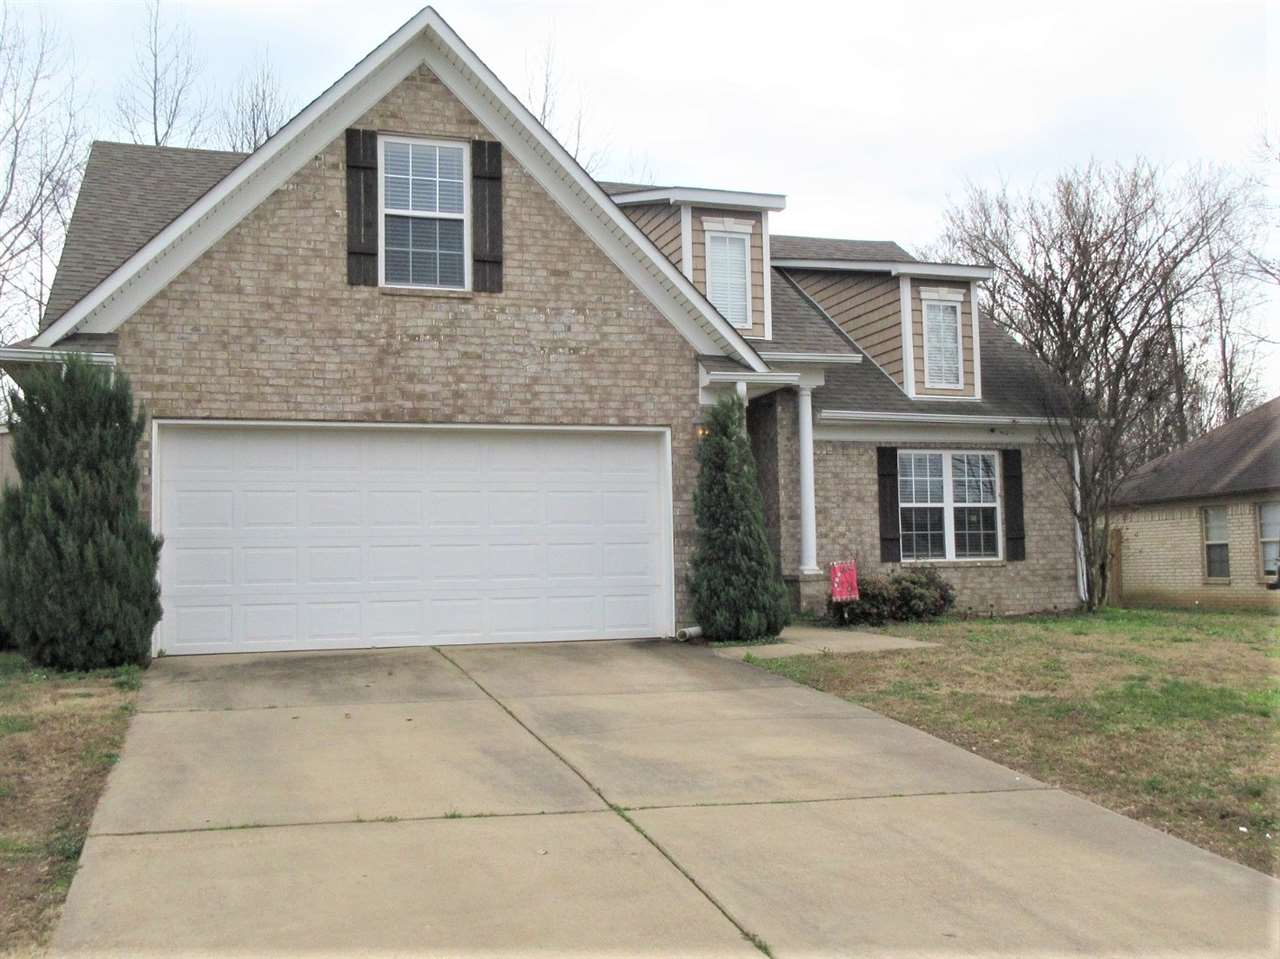 388 Elsberry, Munford, TN 38058